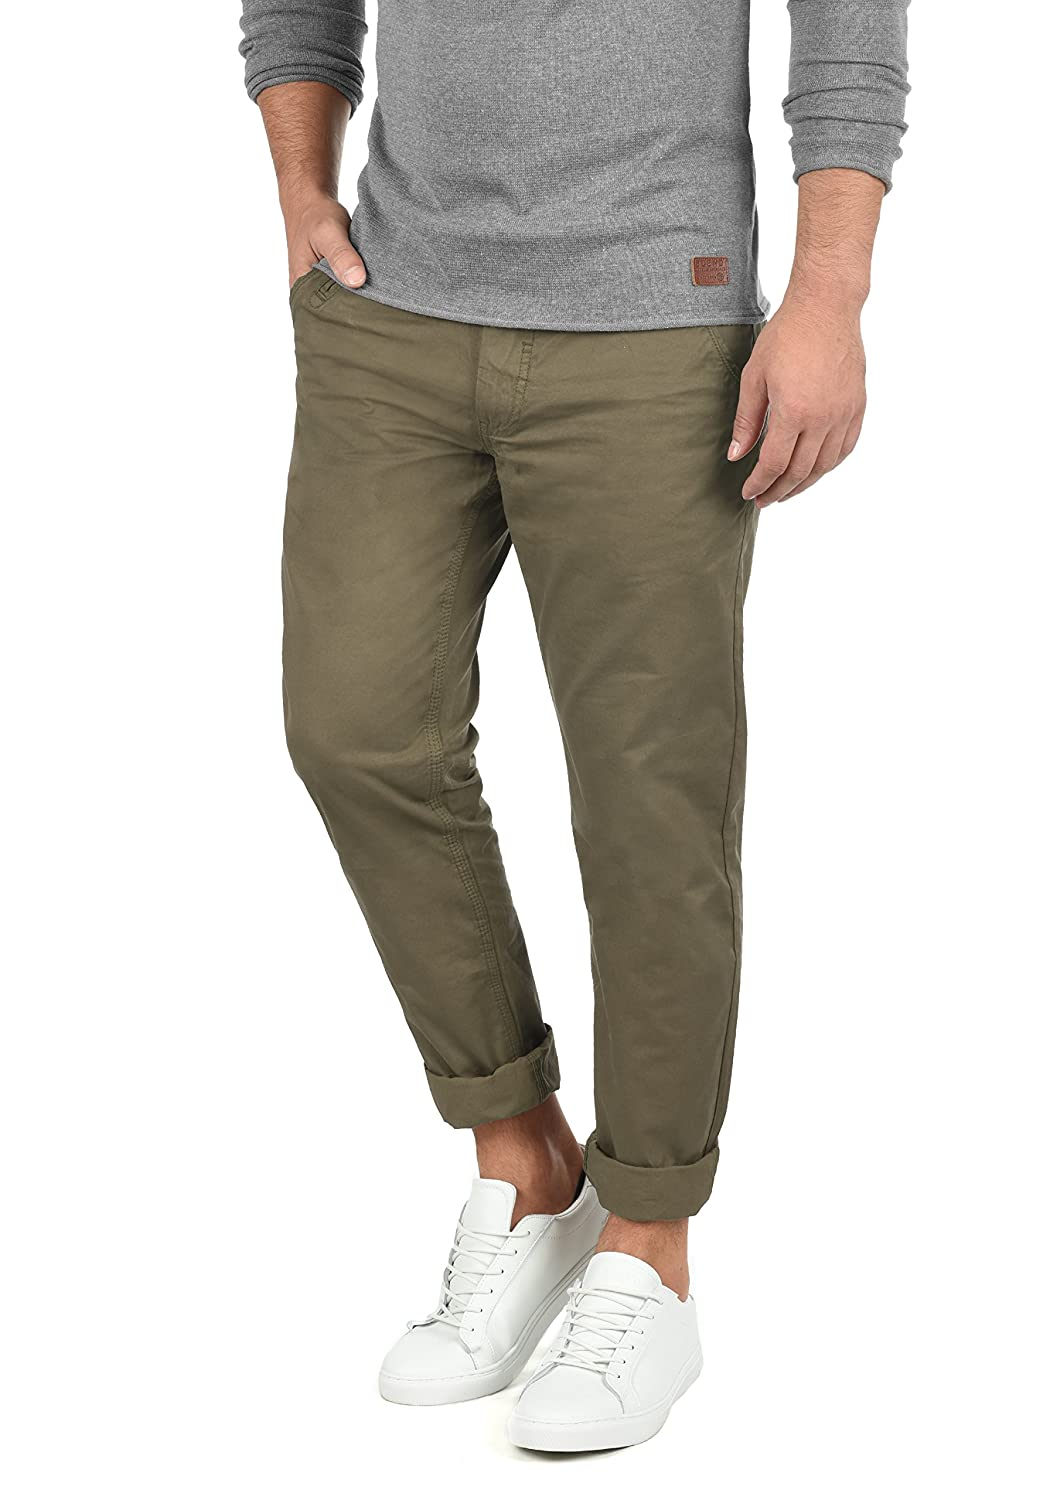 BLEND Tromp - pantalon chino clásico